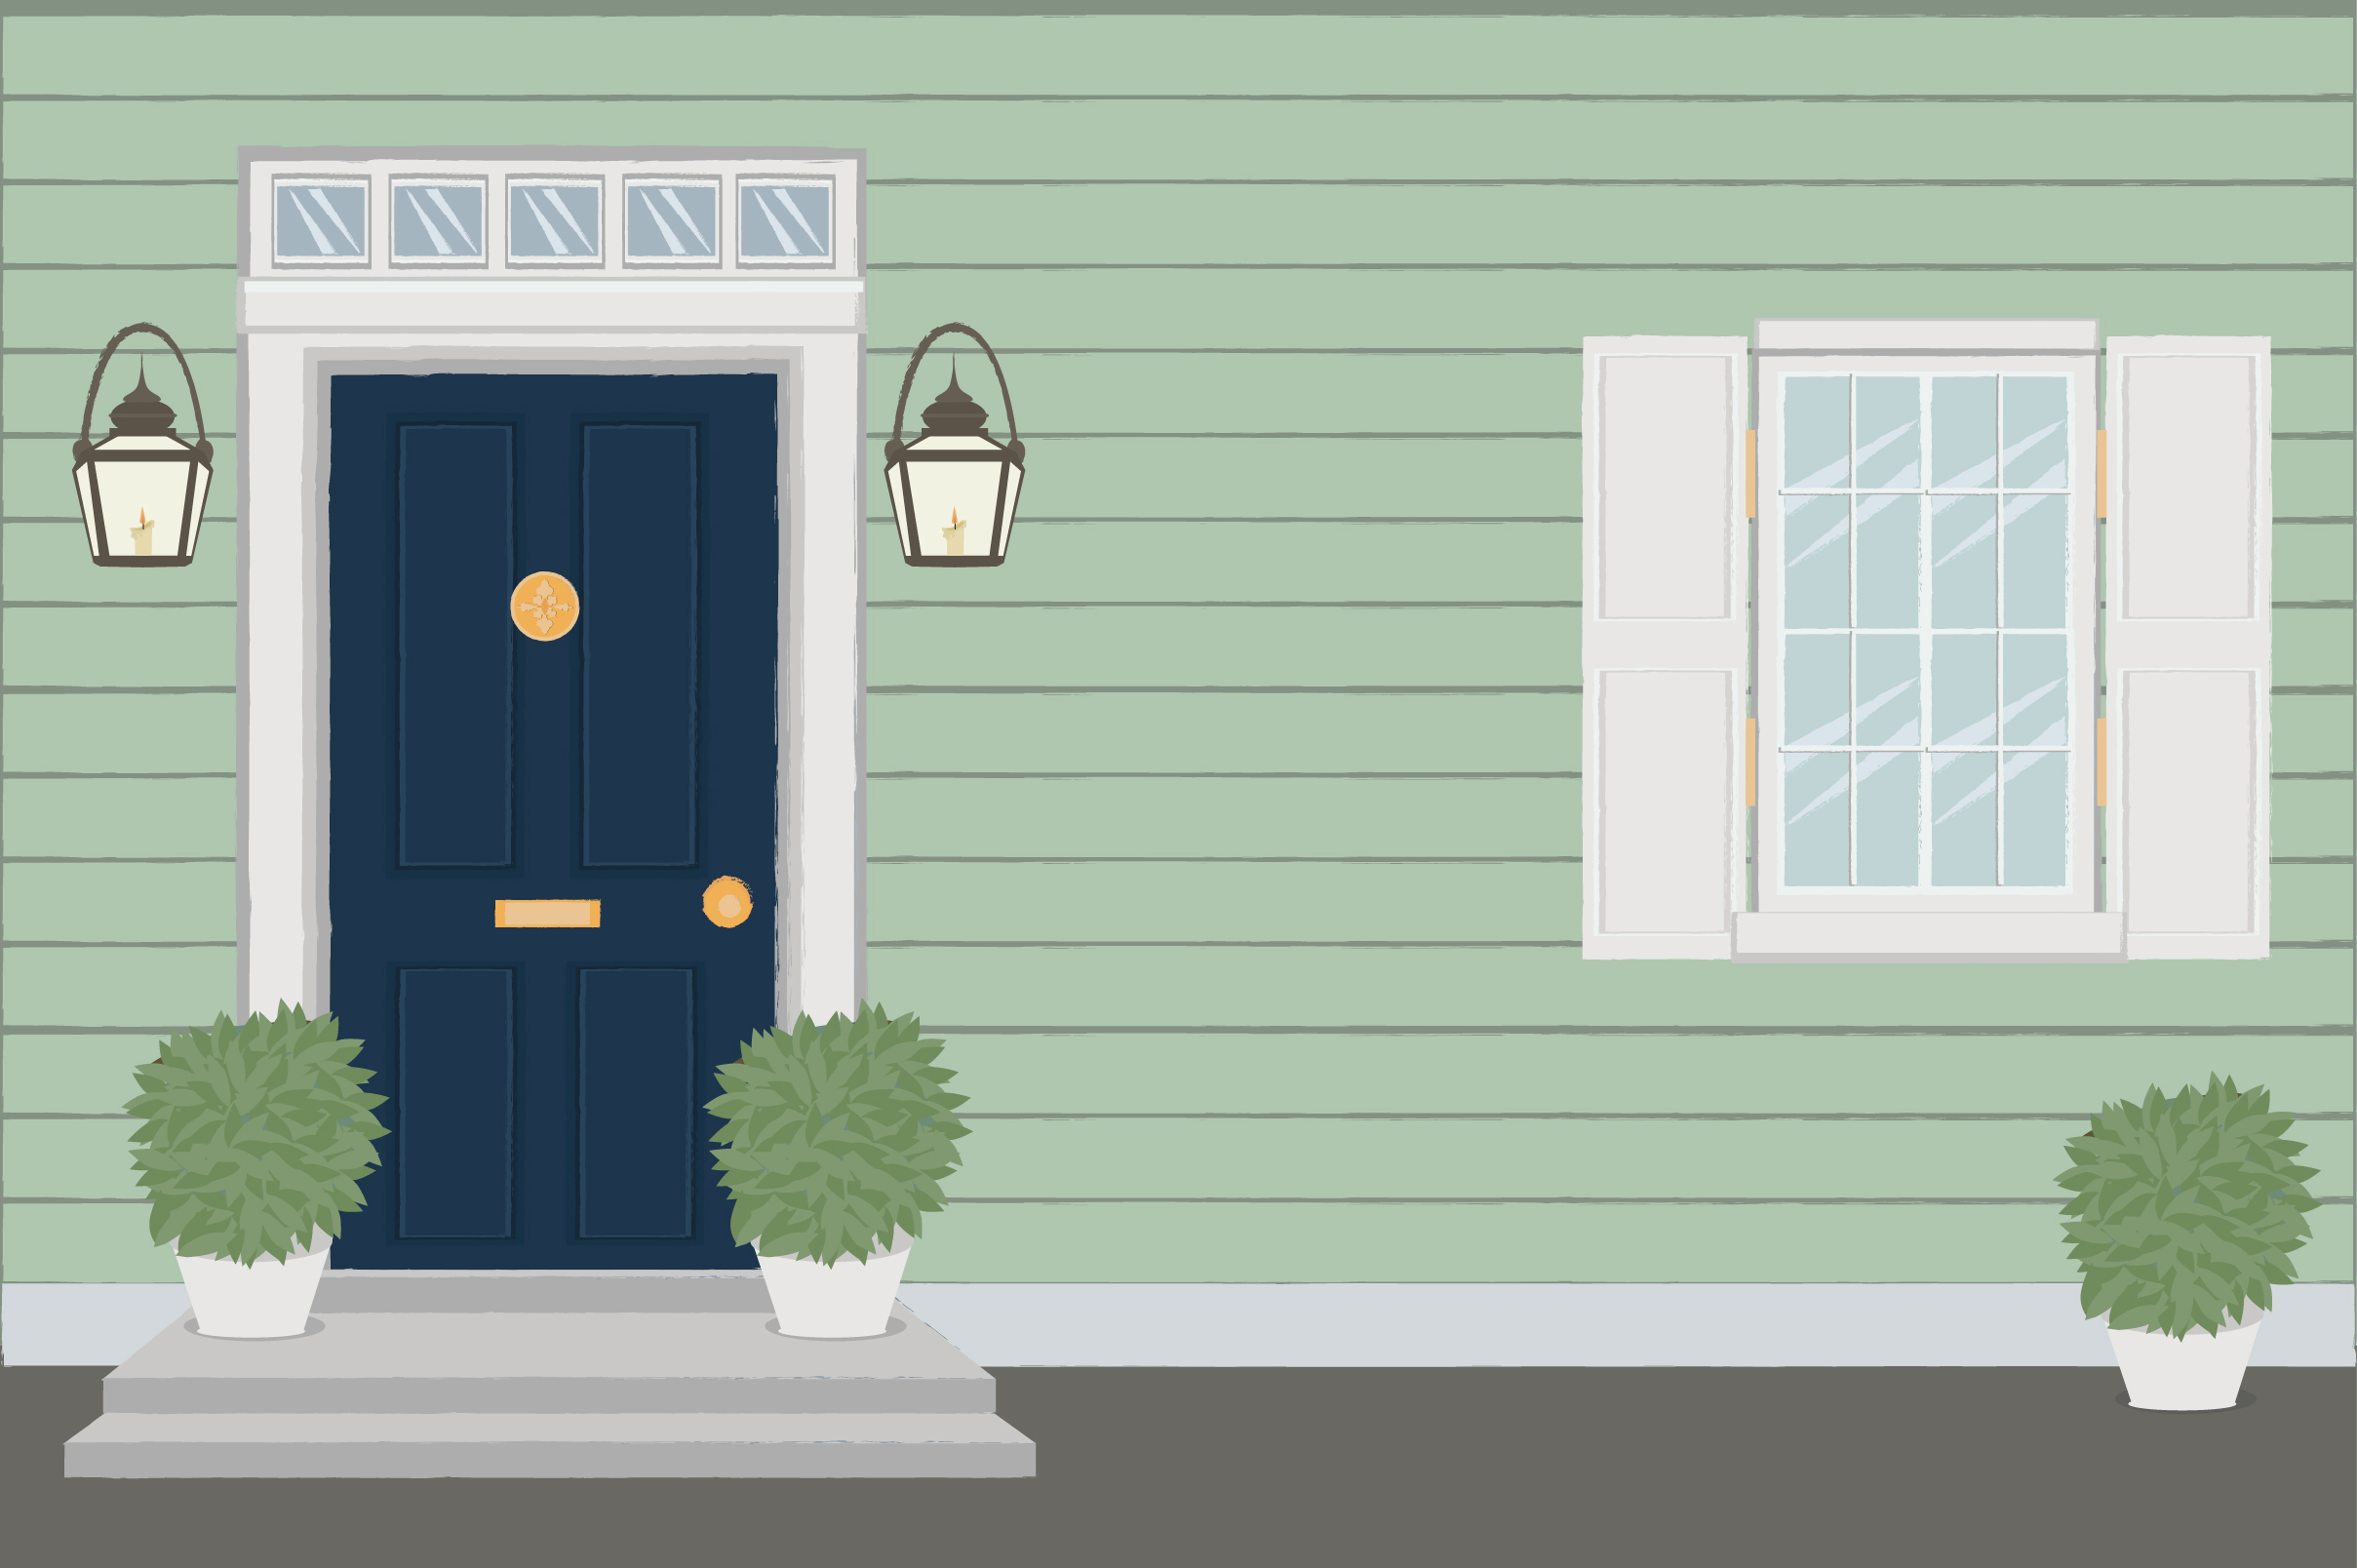 Doors design collection example image 17